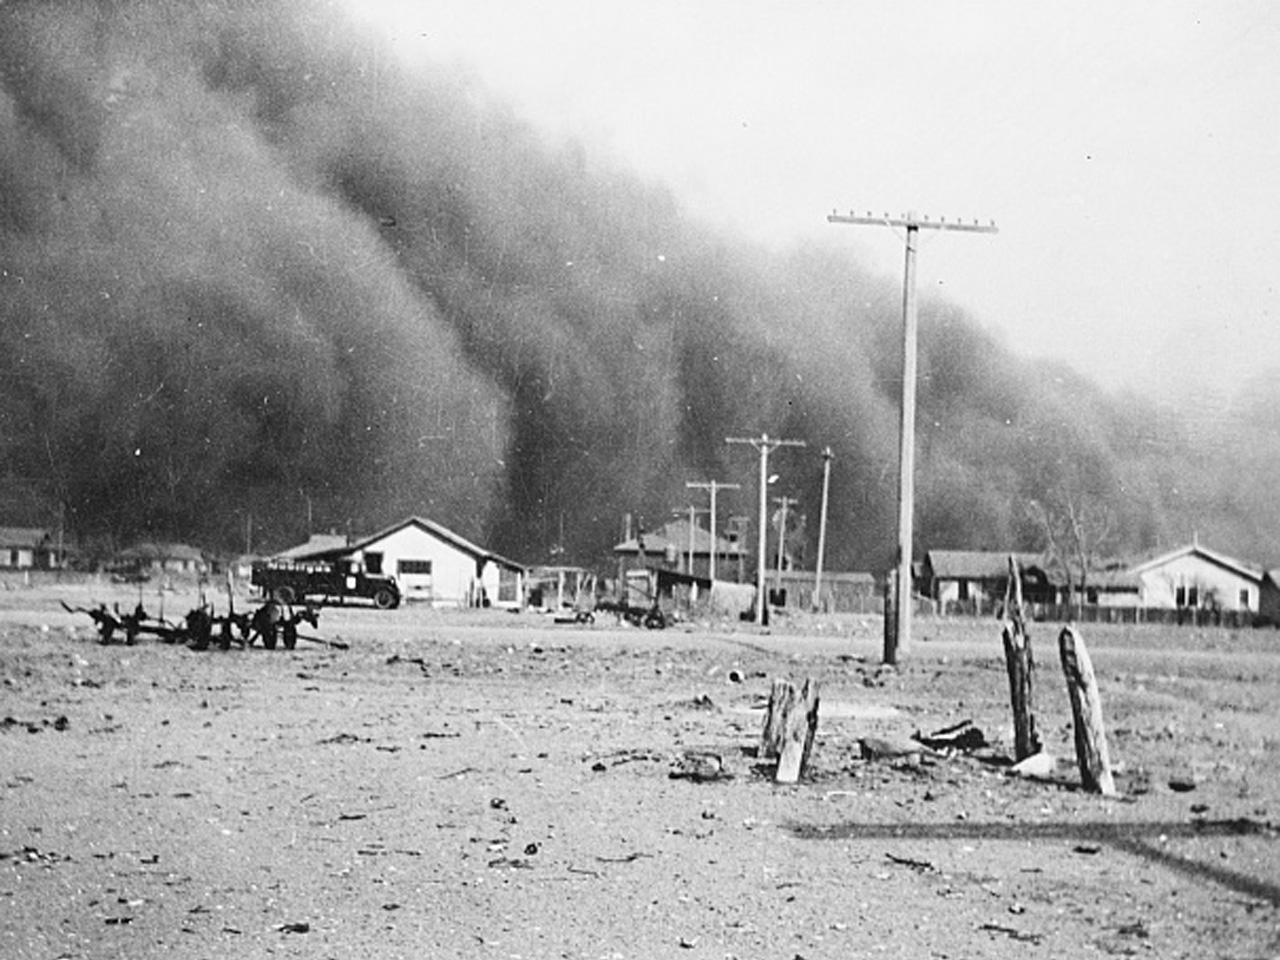 Colorado - Depression-era dust storms - Pictures - CBS News